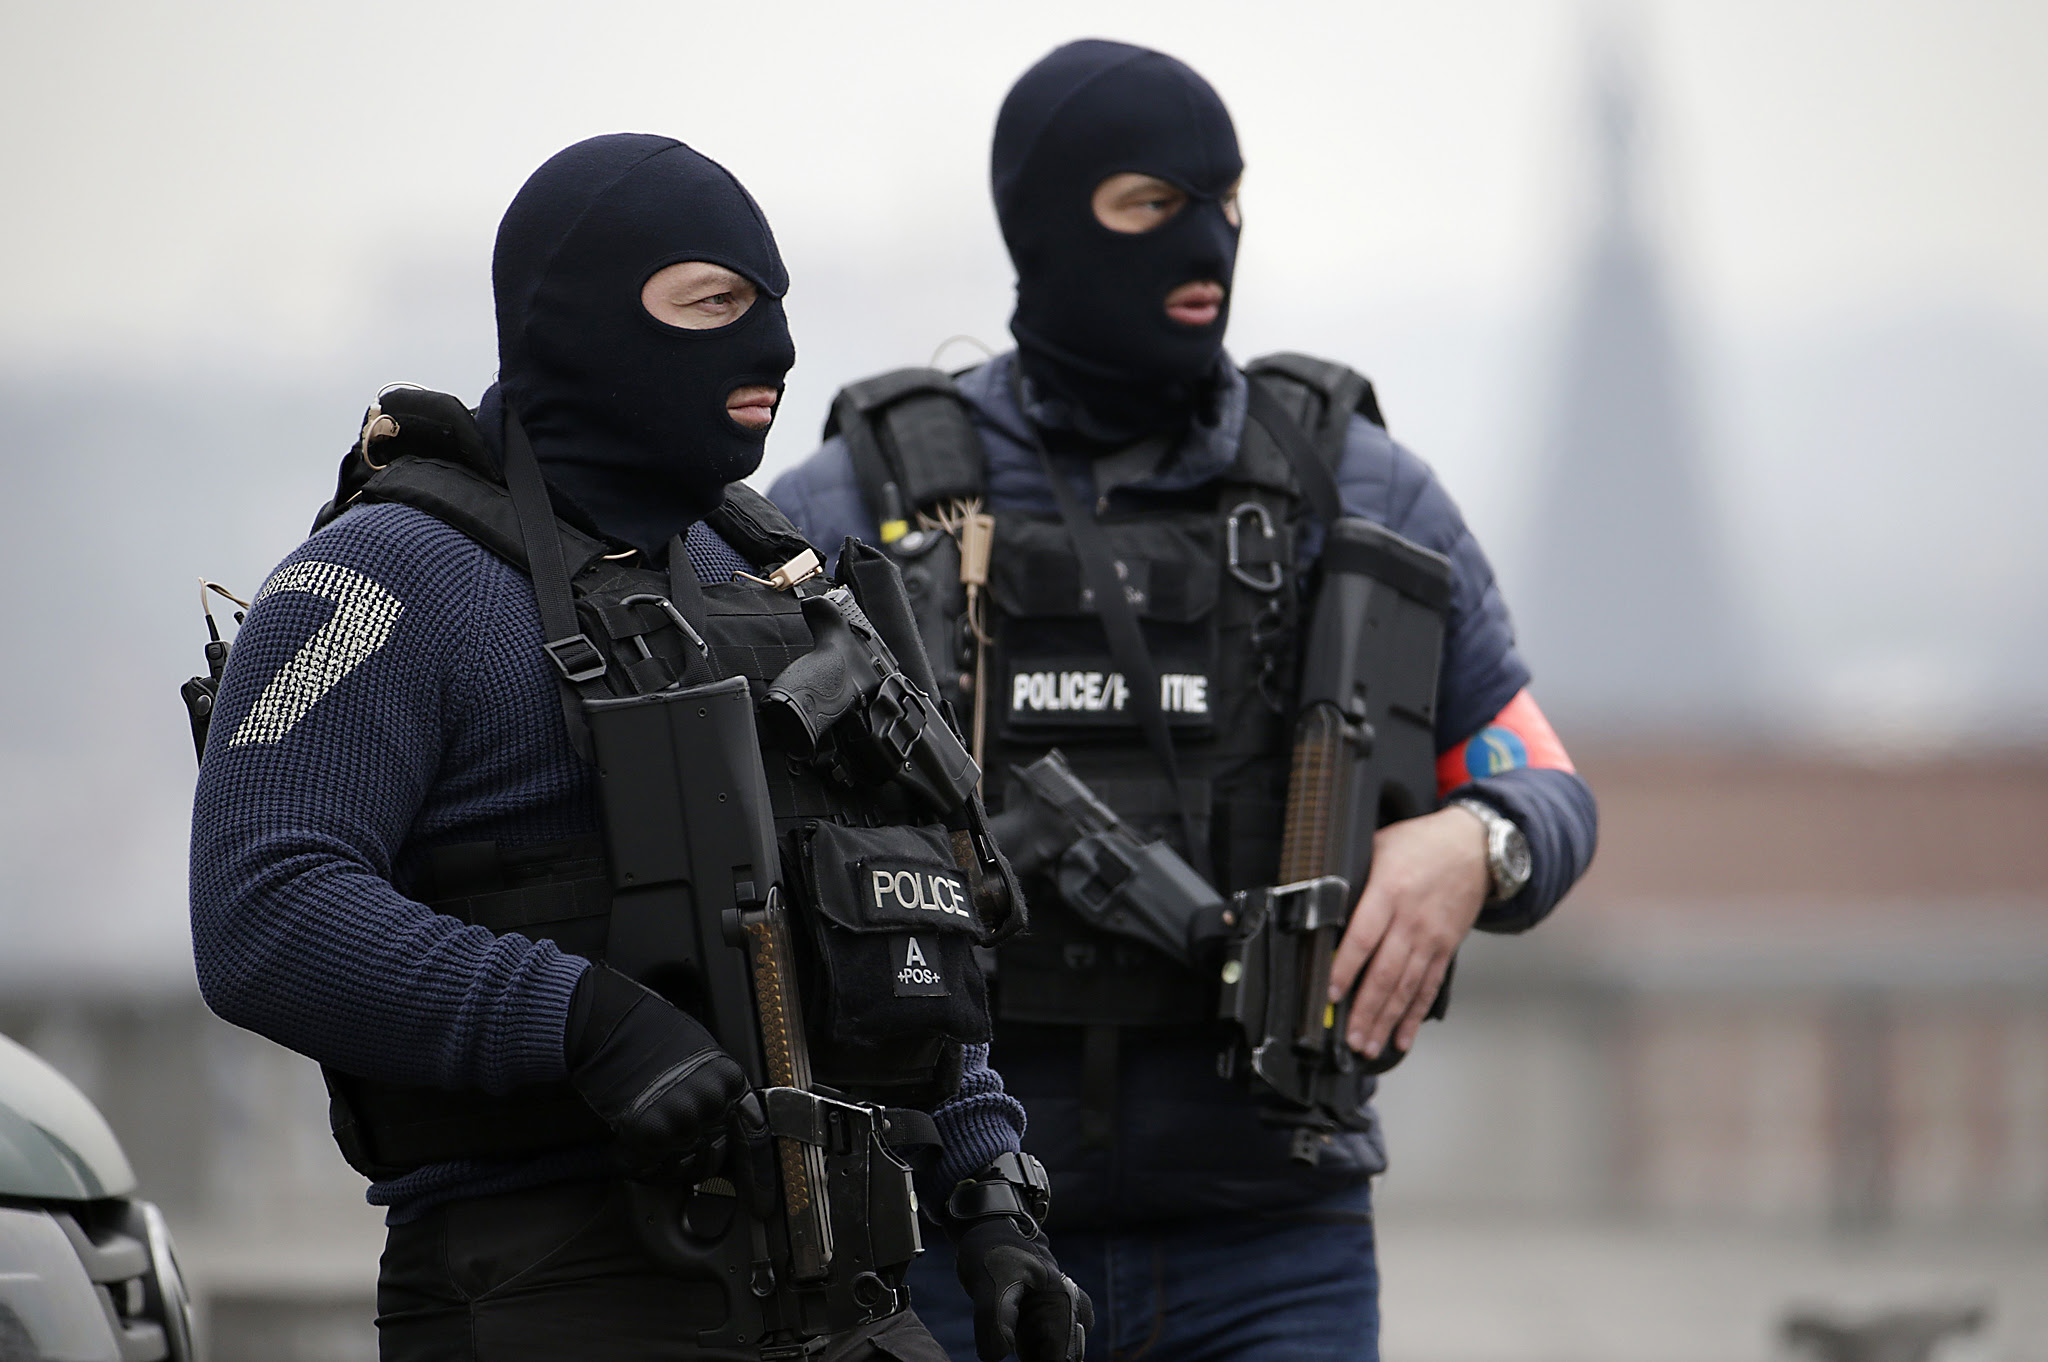 Special police forces stand guard outsid...Special police forces stand guard outside the Council Chamber of Brussels on March 24, 2016 during investigations into the Paris and Brussels terror attacks. More than 30 people have been identified as being involved in a network behind the Paris attacks on November 13, with links now established to this week's bombings in Brussels. AFP PHOTO / KENZO TRIBOUILLARDKENZO TRIBOUILLARD/AFP/Getty Images